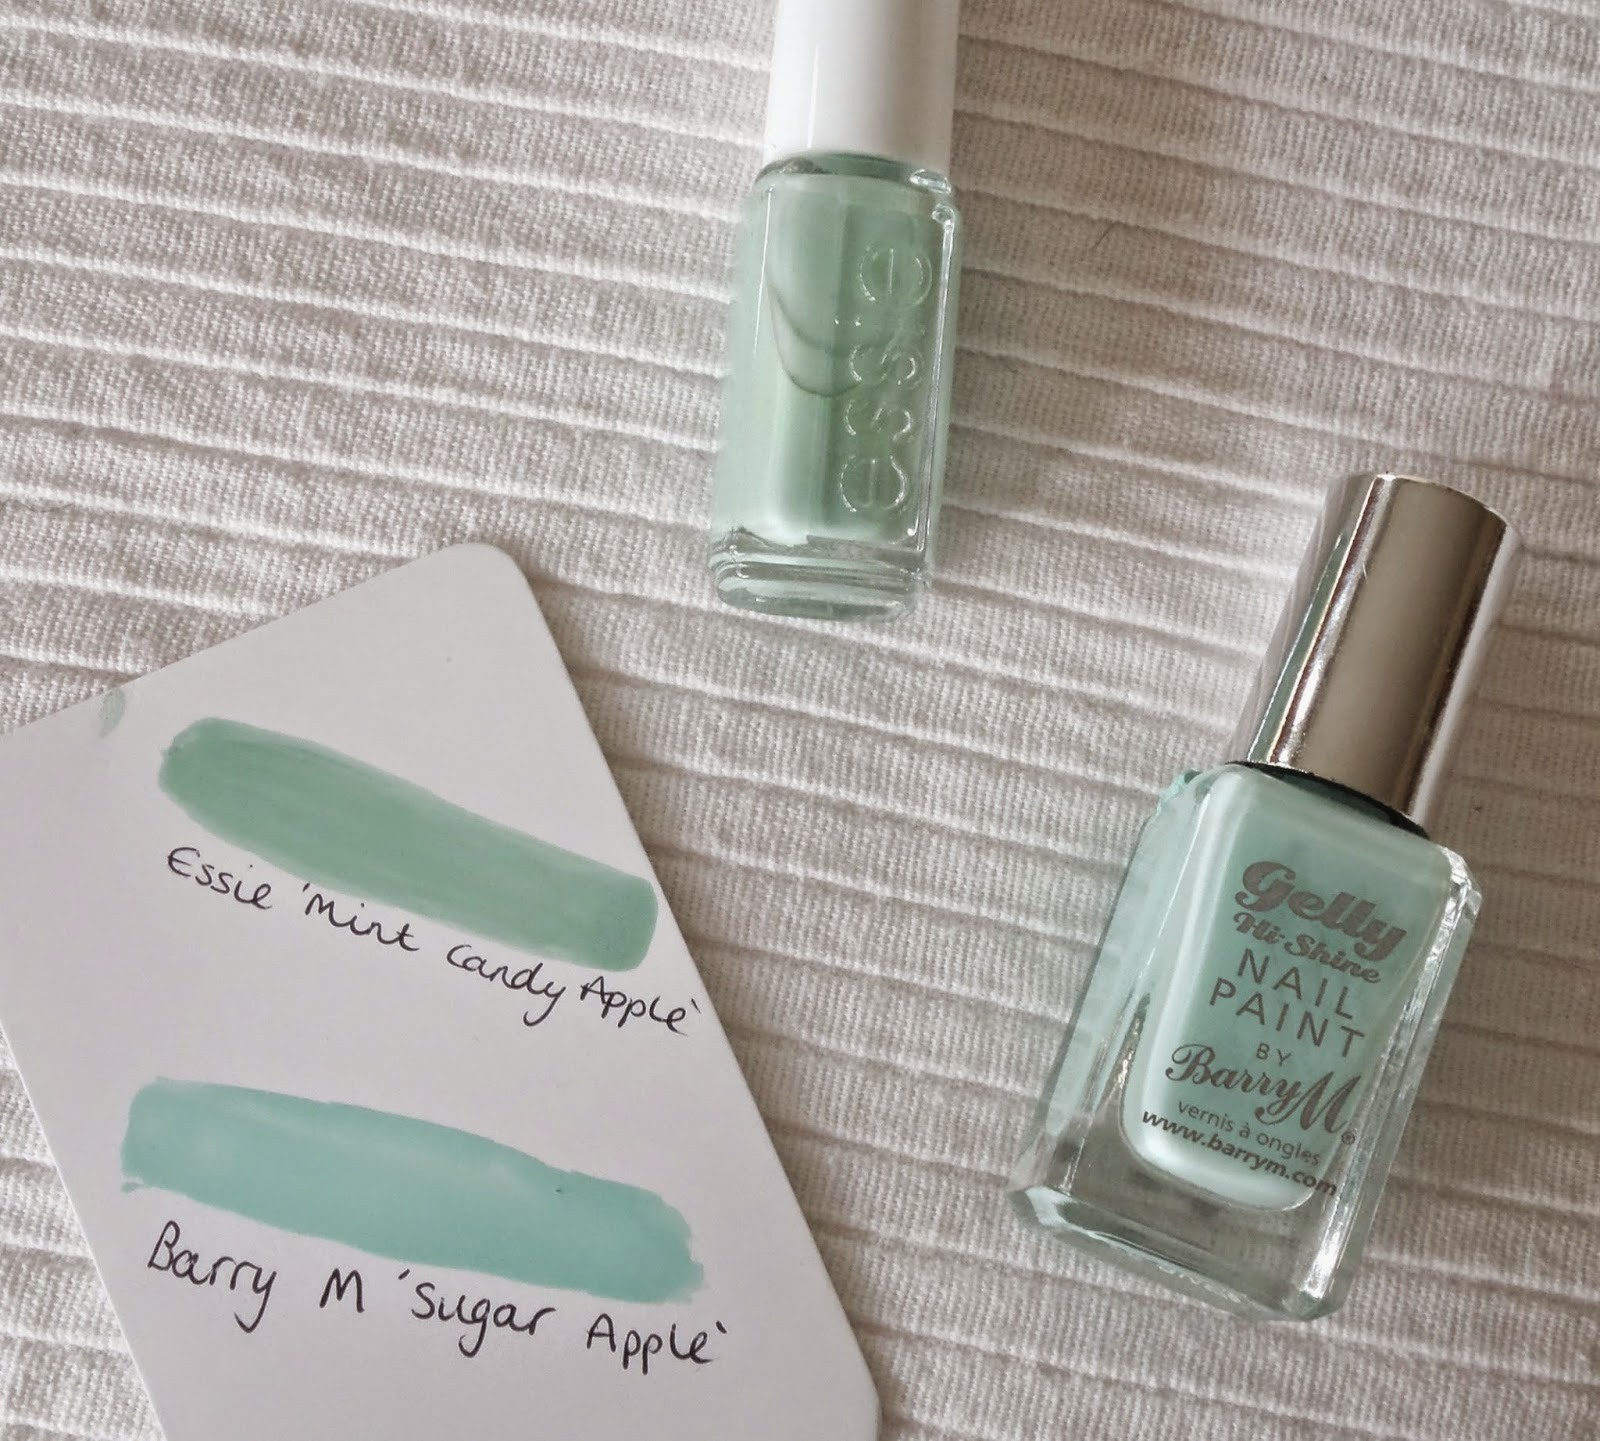 Spring and Summer Essie Dupes, Essie Mint Candy Apple, Barry M Sugar Apple